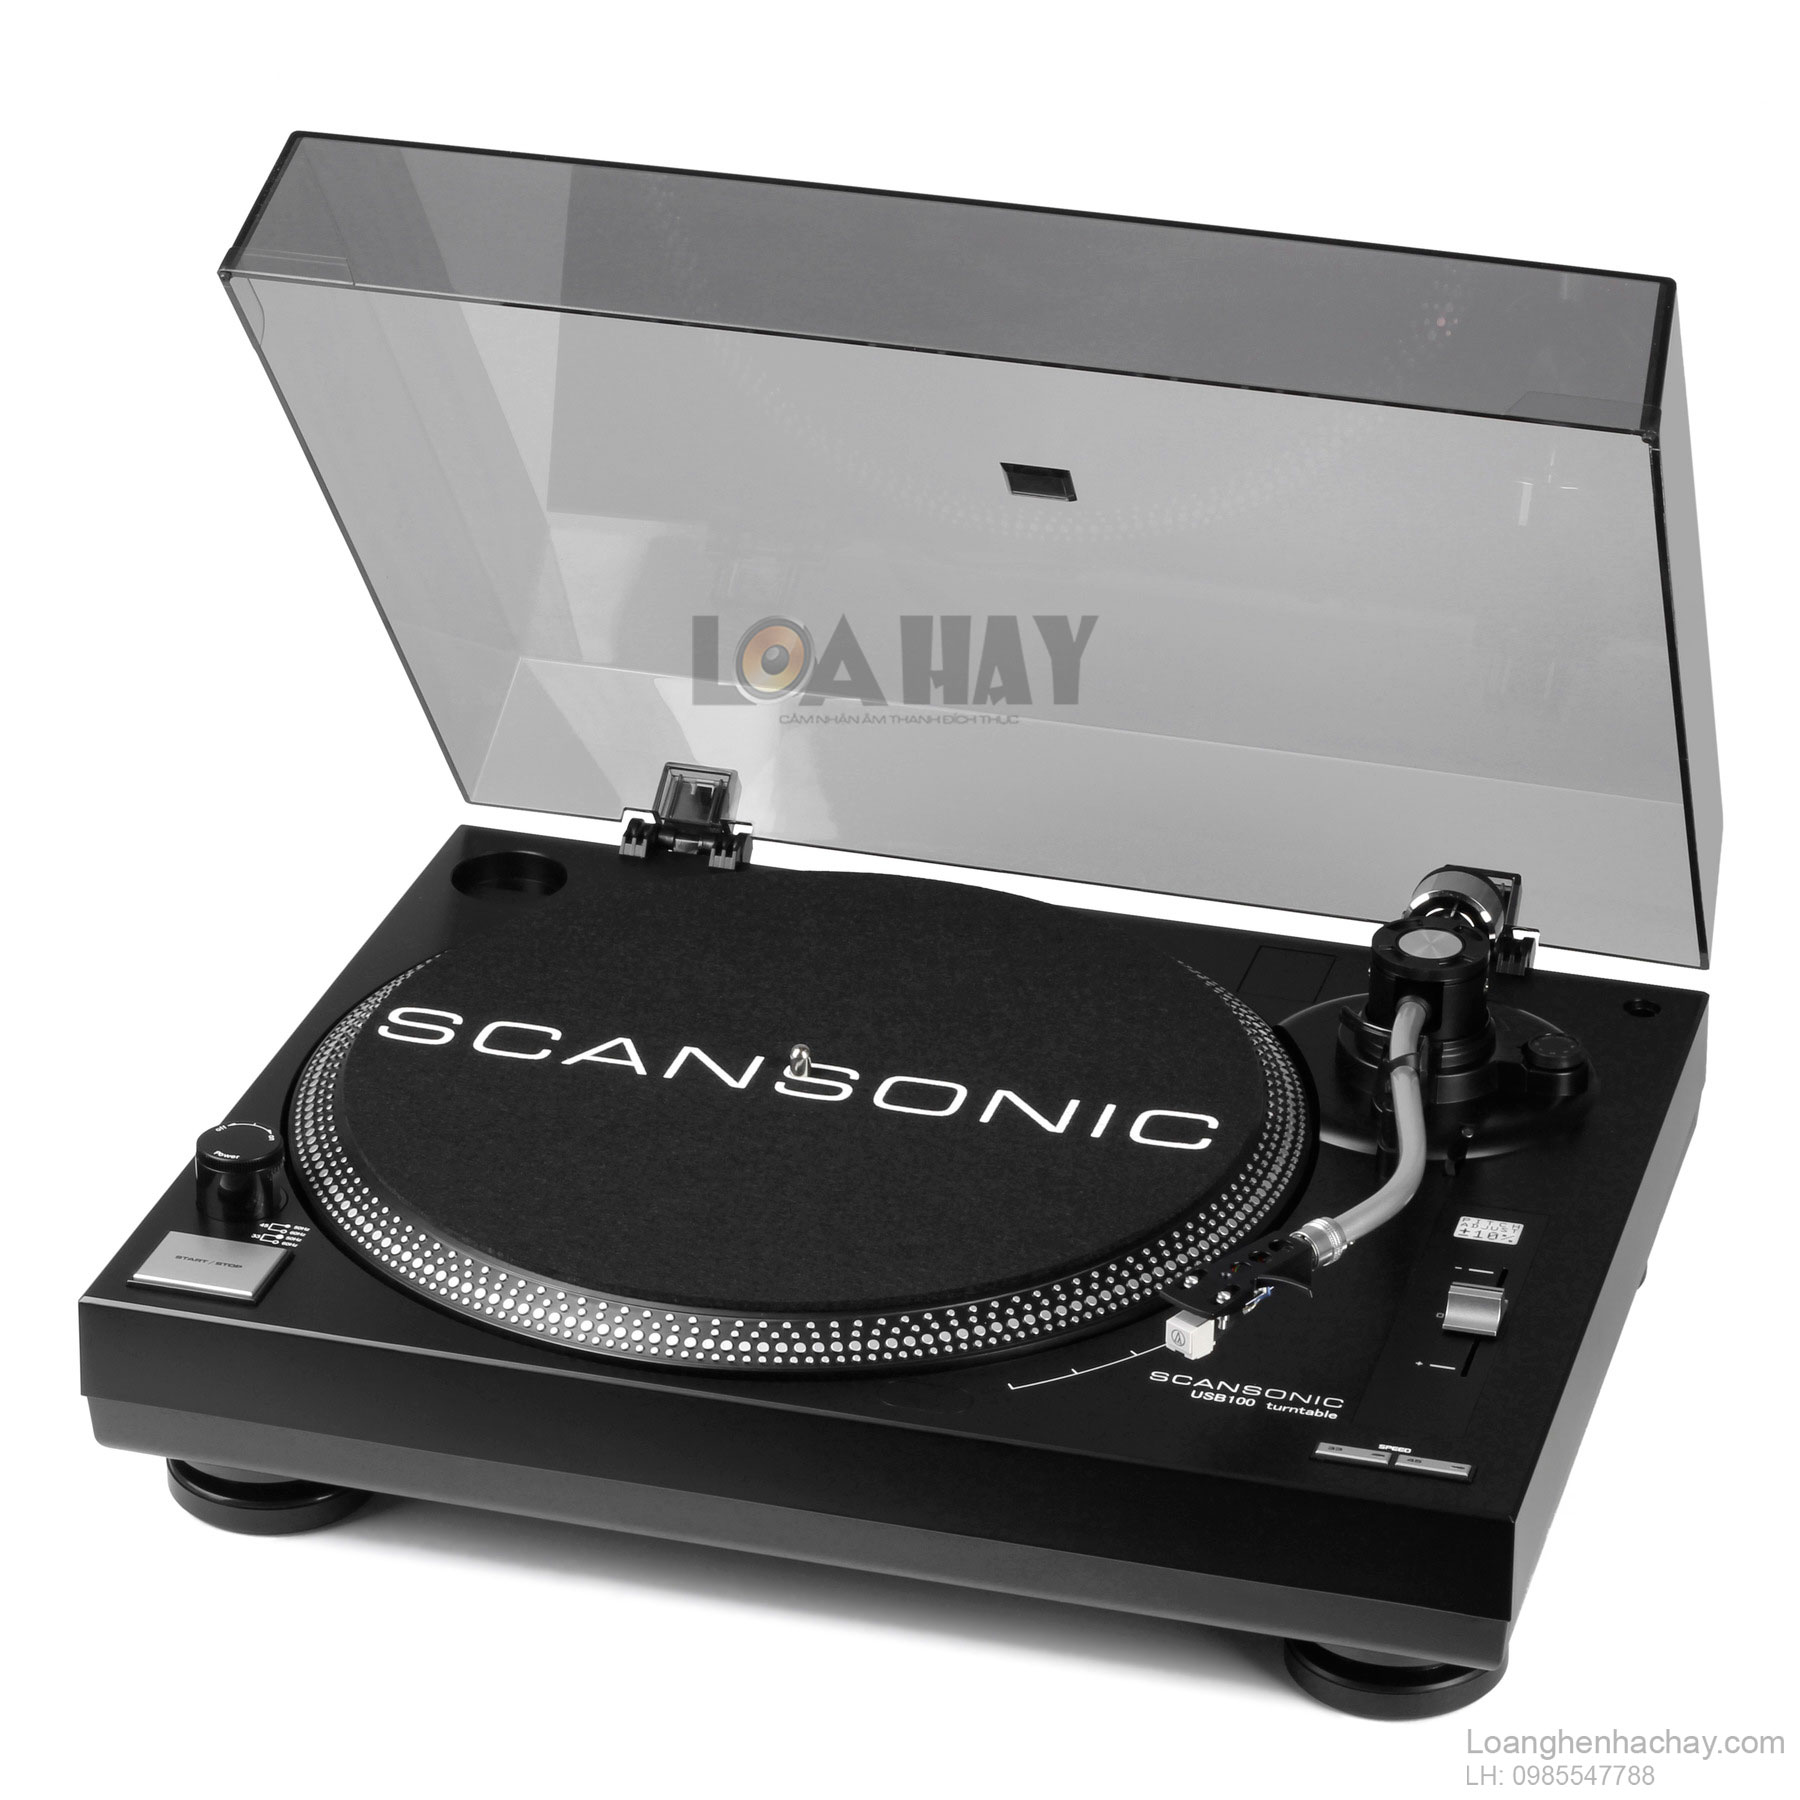 dau dia than scansonic usb100